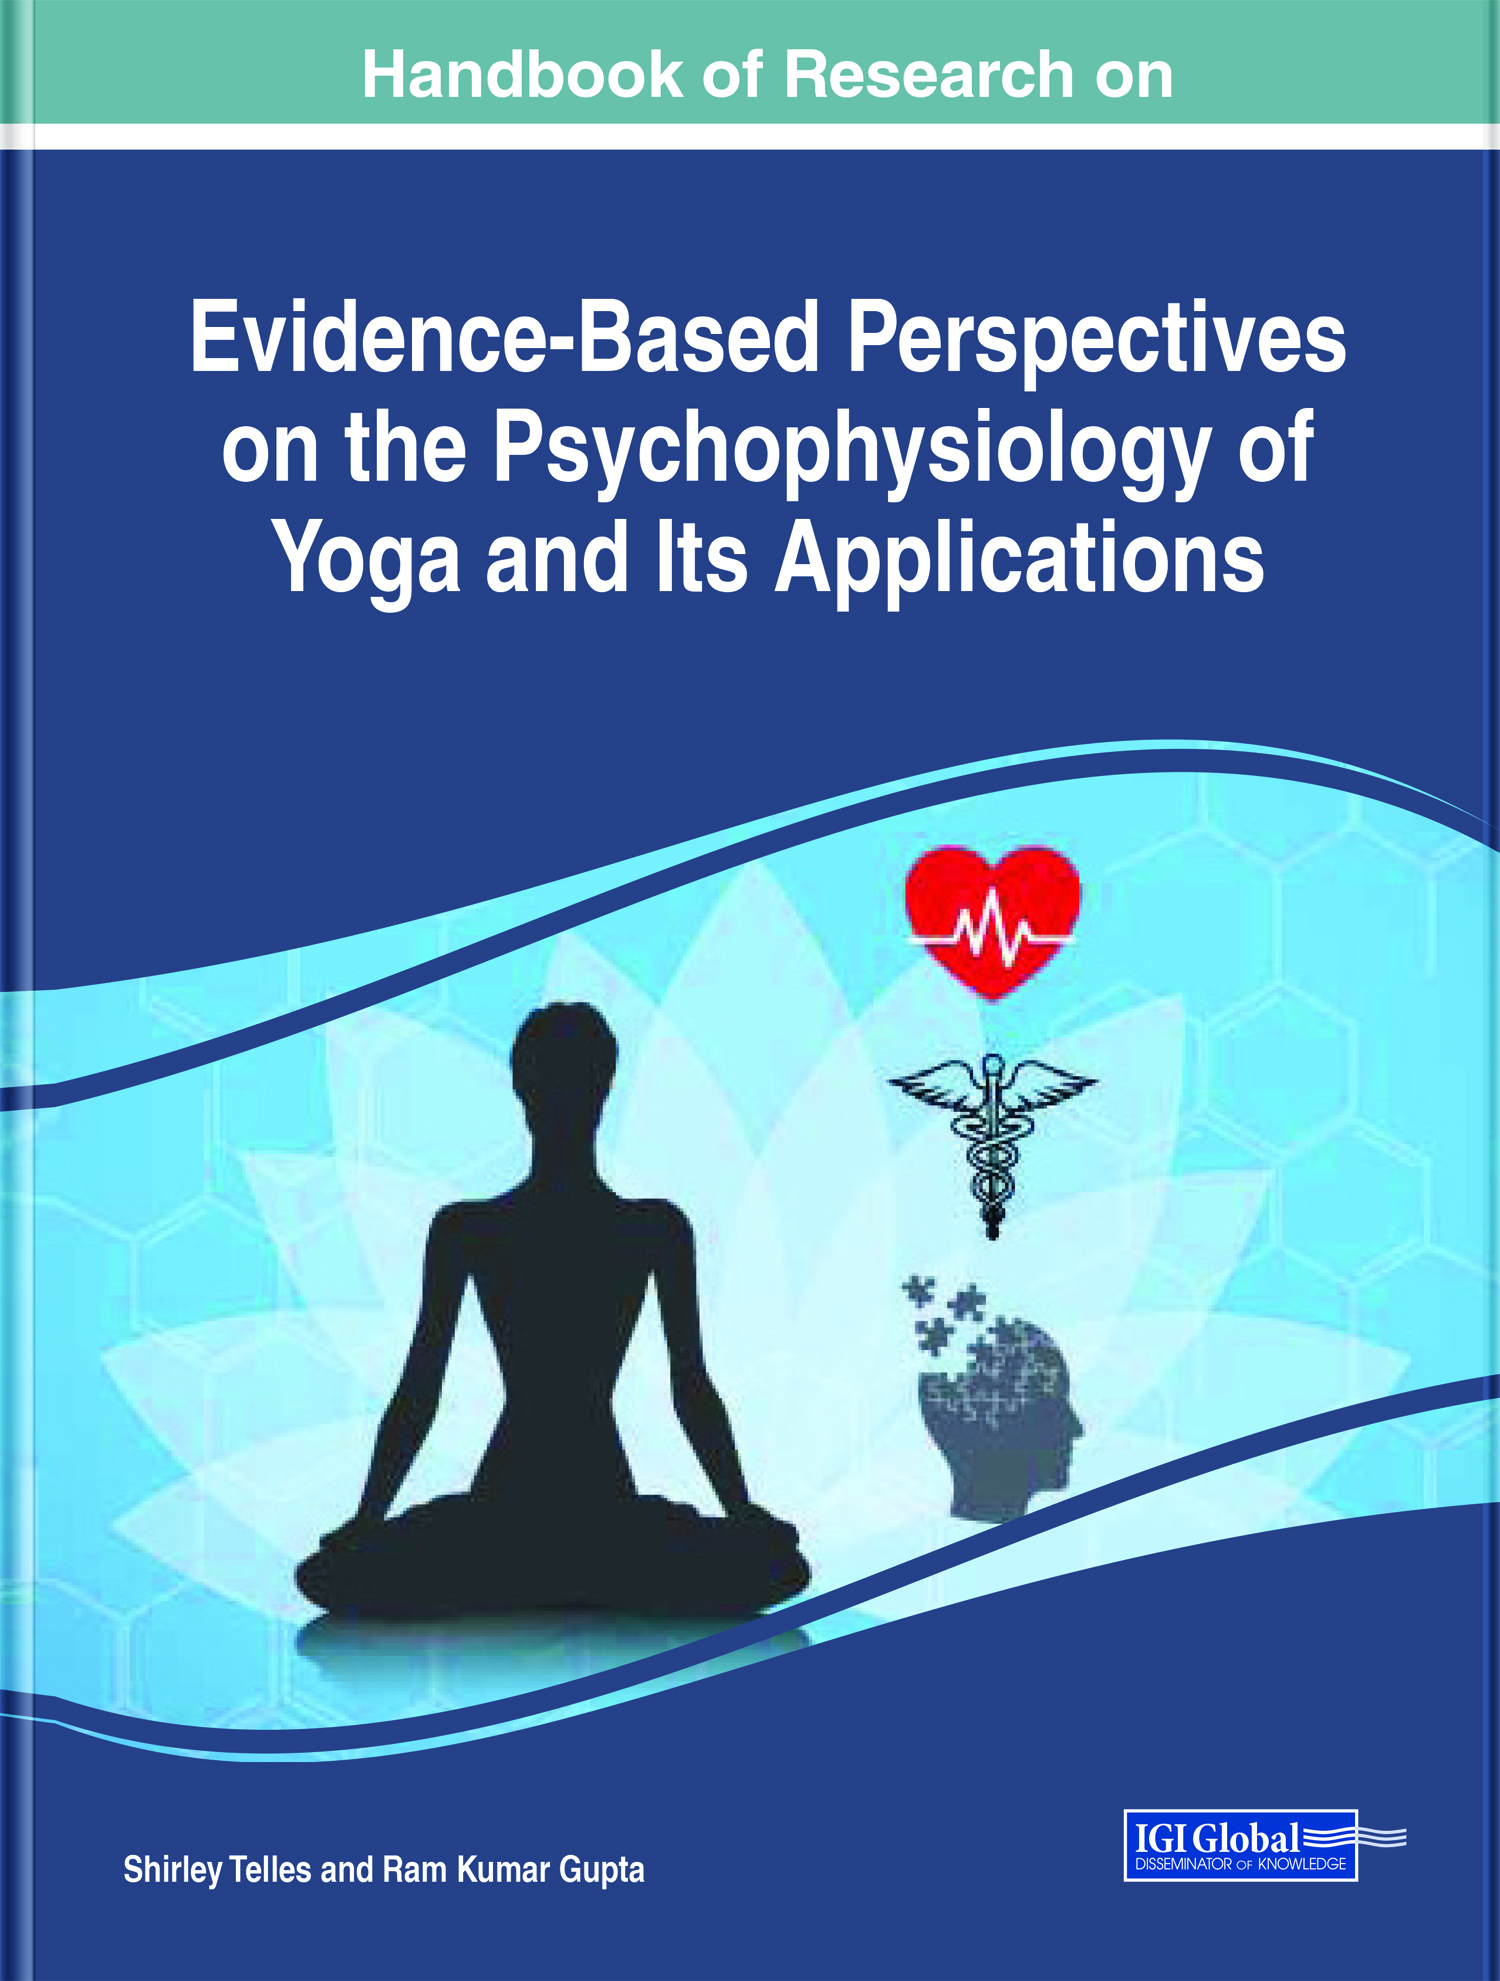 Clinicians Applying Yoga Principles and Practices in Pain Care: An Evidence-Informed Approach